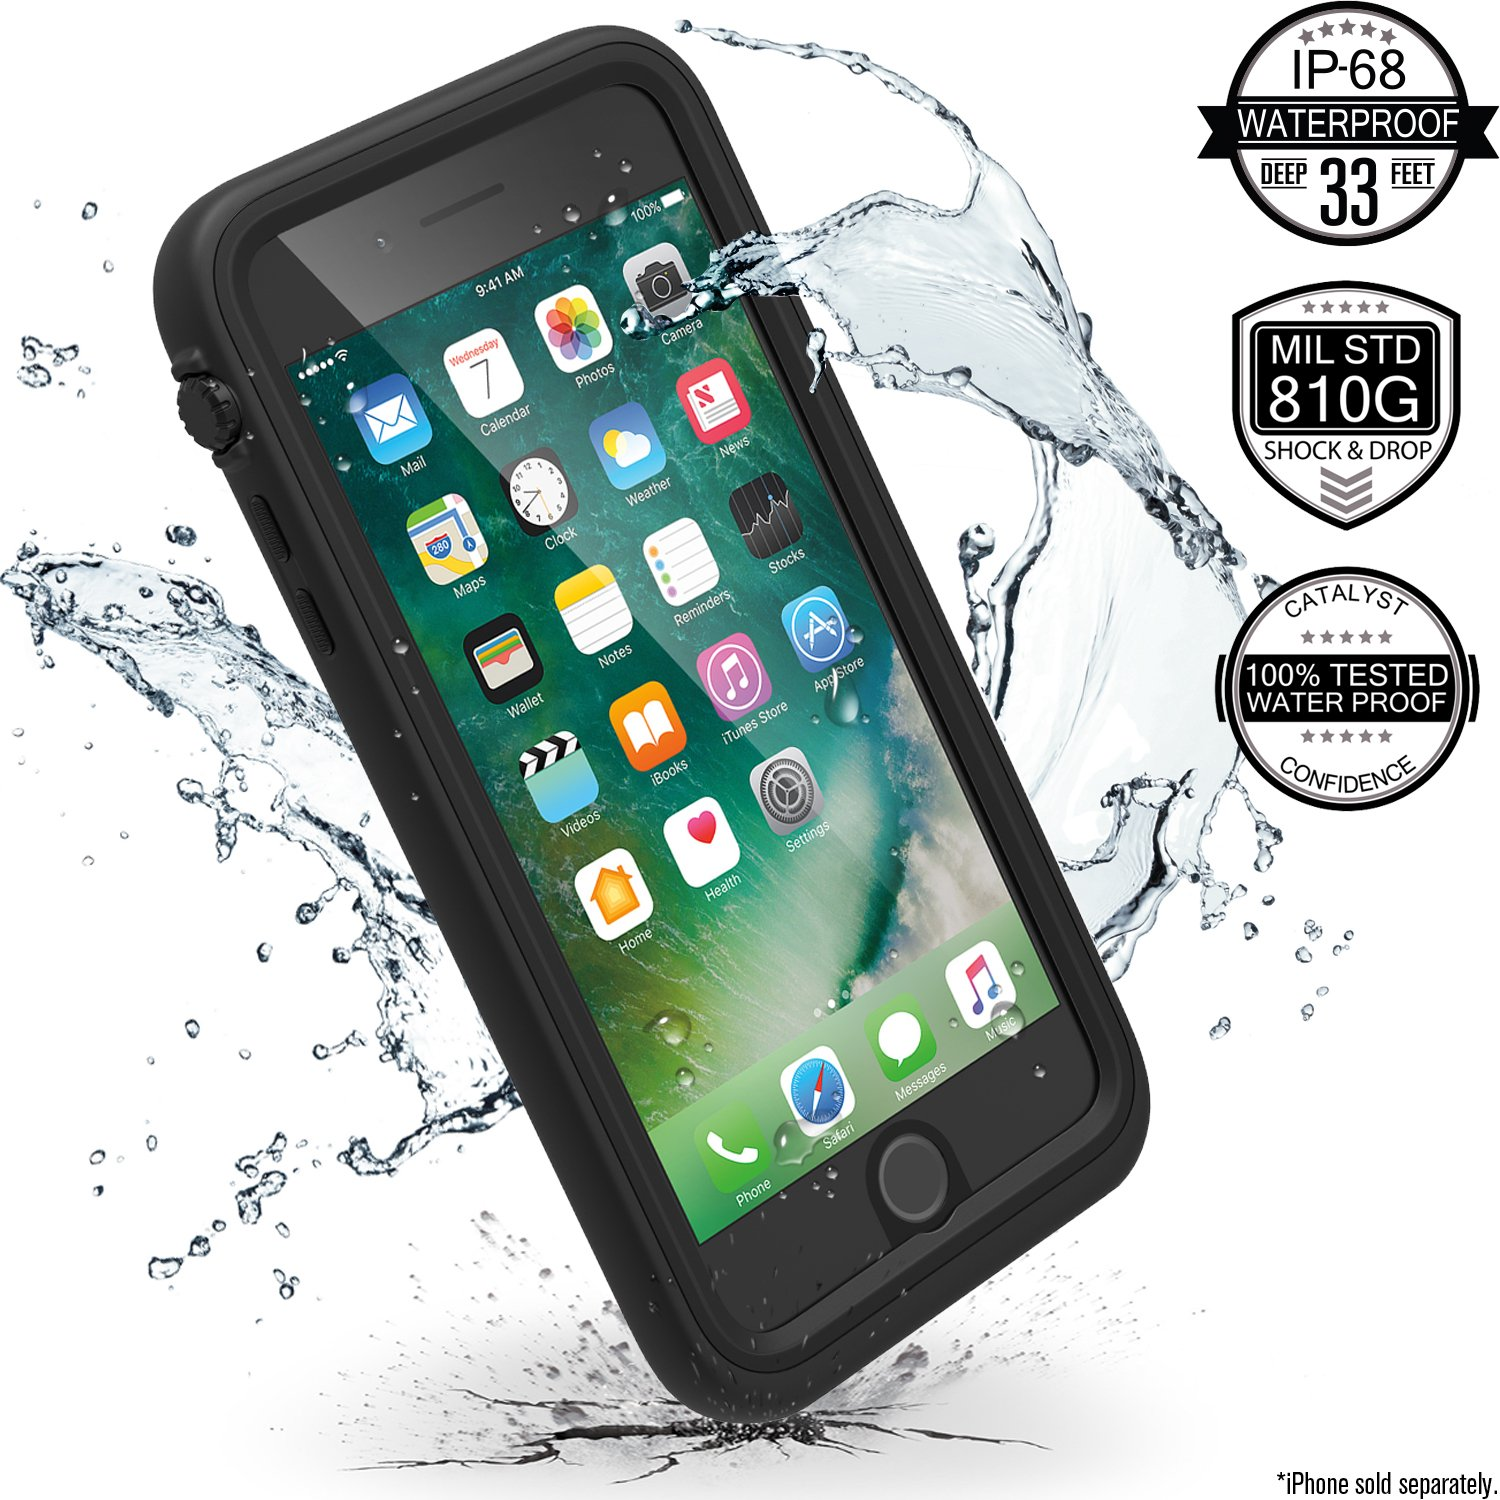 iPhone 7 Plus Waterproof Case, Shock Proof, Drop Proof by Catalyst for Apple iPhone 7+ with High Touch Sensitivity ID (Stealth Black) by Catalyst